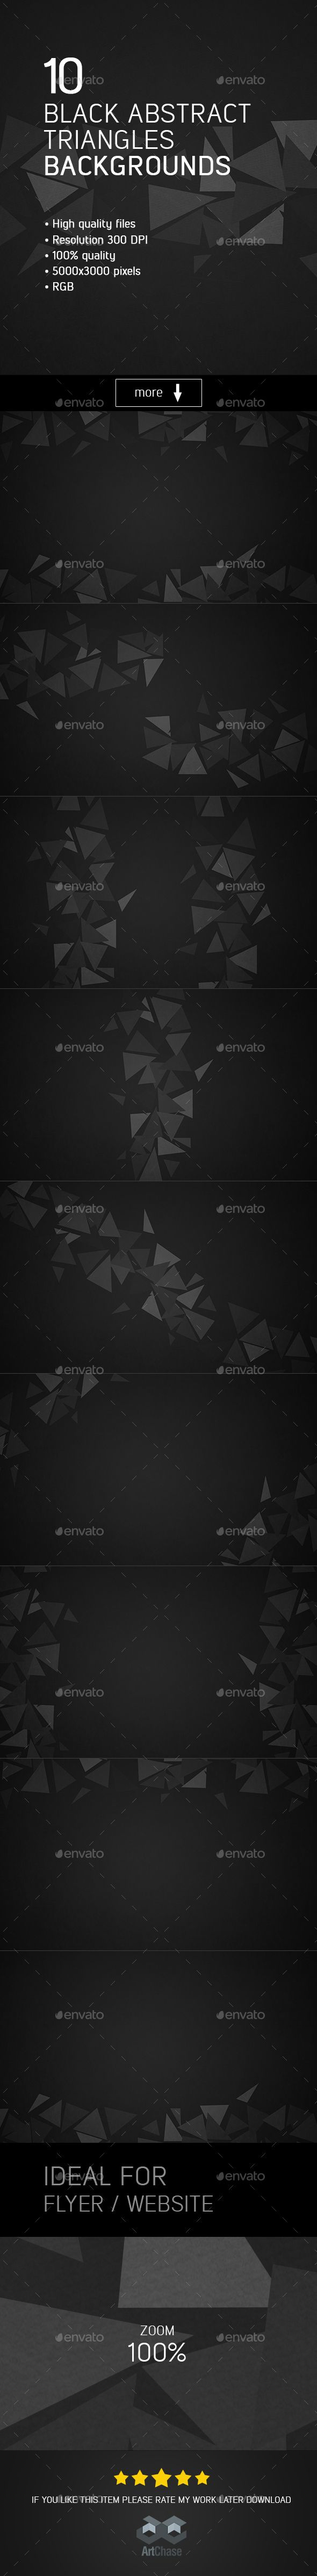 #Black Abstract Triangles #Backgrounds - Backgrounds Graphics